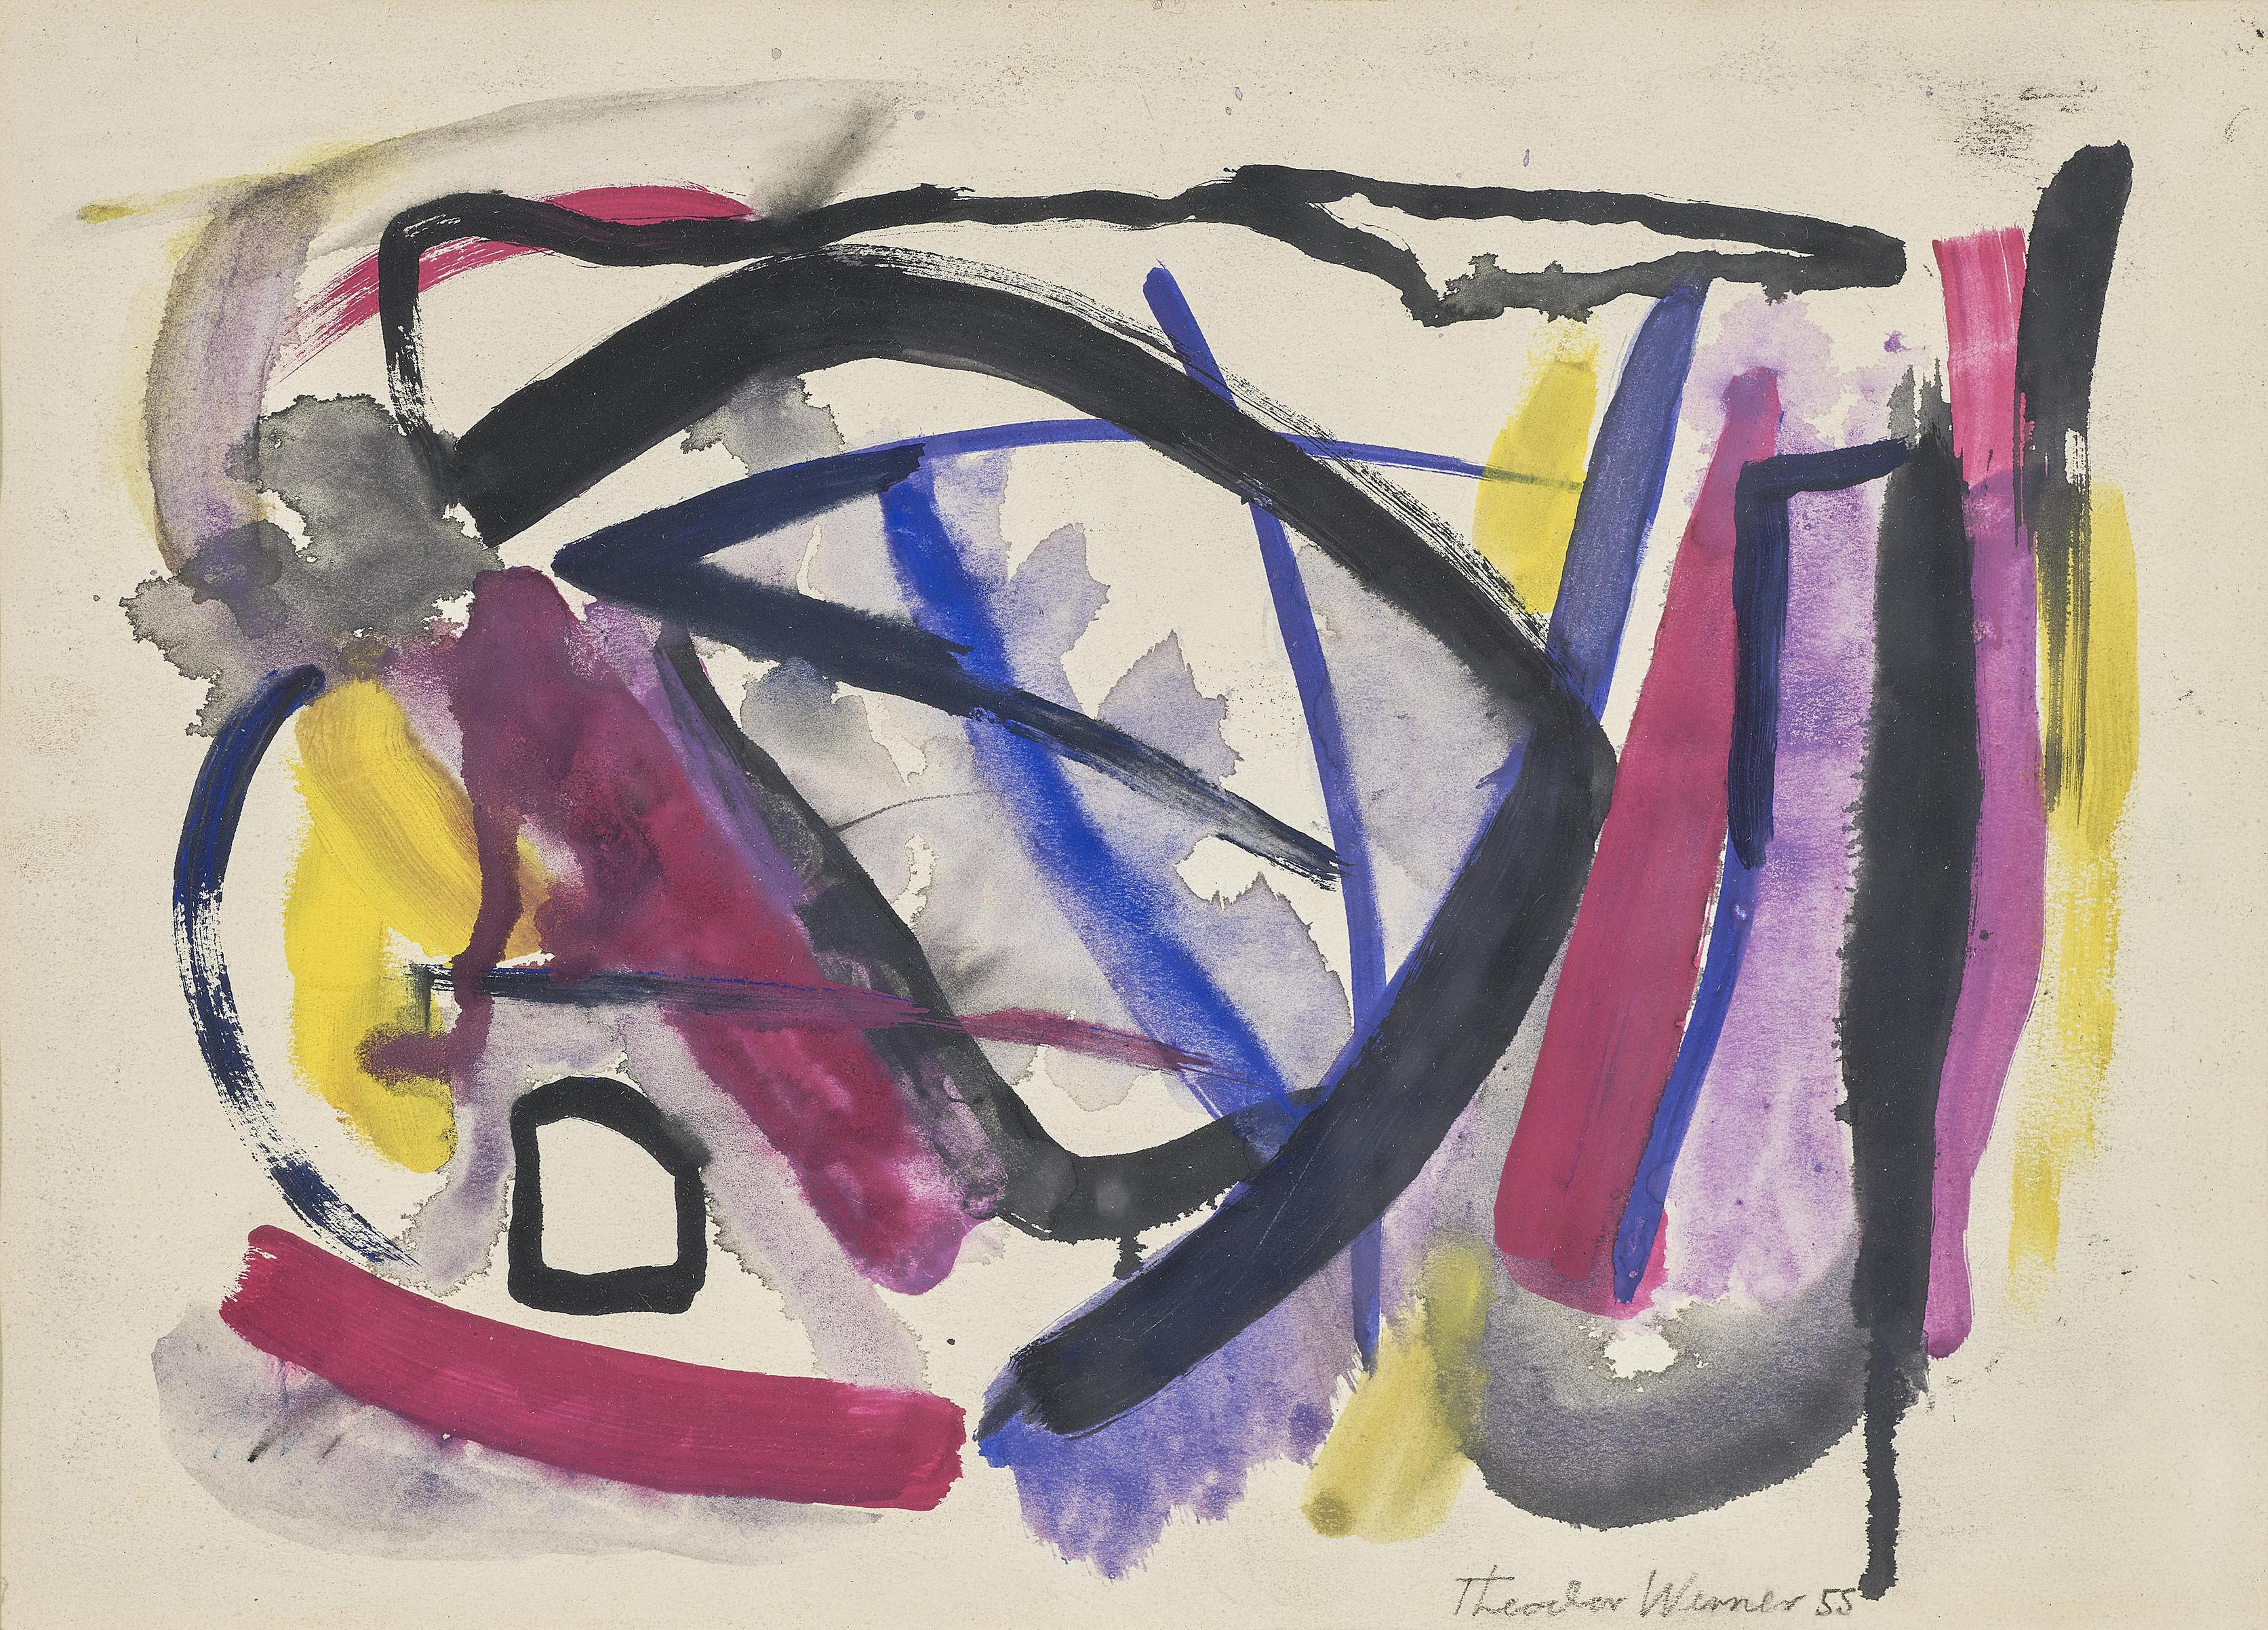 Theodor Werner - Abstrakte Komposition (Abstract Composition)-1955